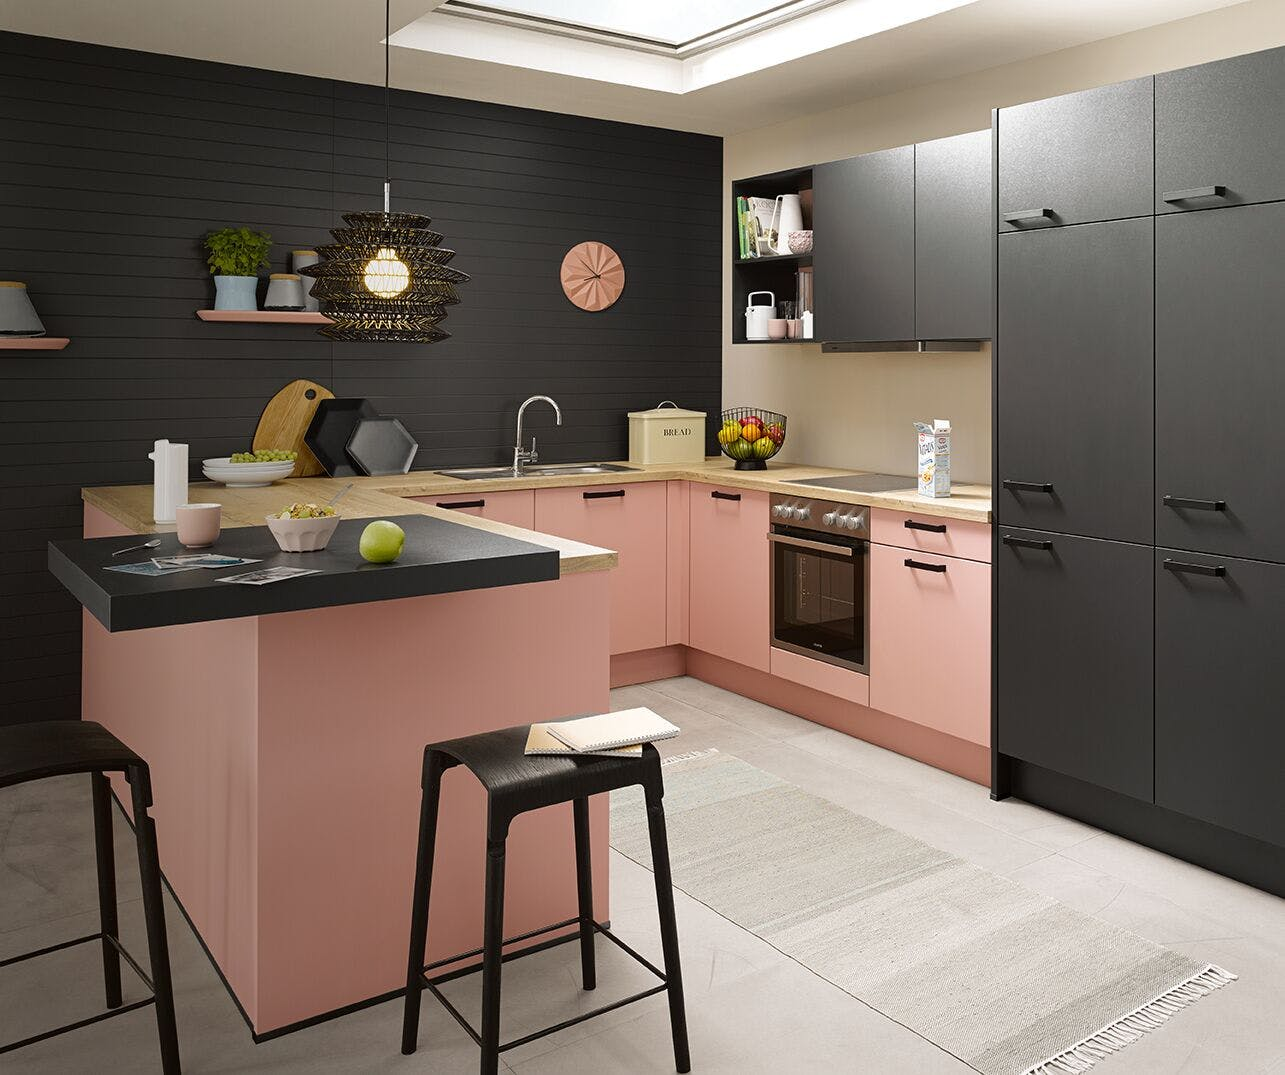 Visit our Leeds Kitchen Showroom to view our iconic Schüller collection